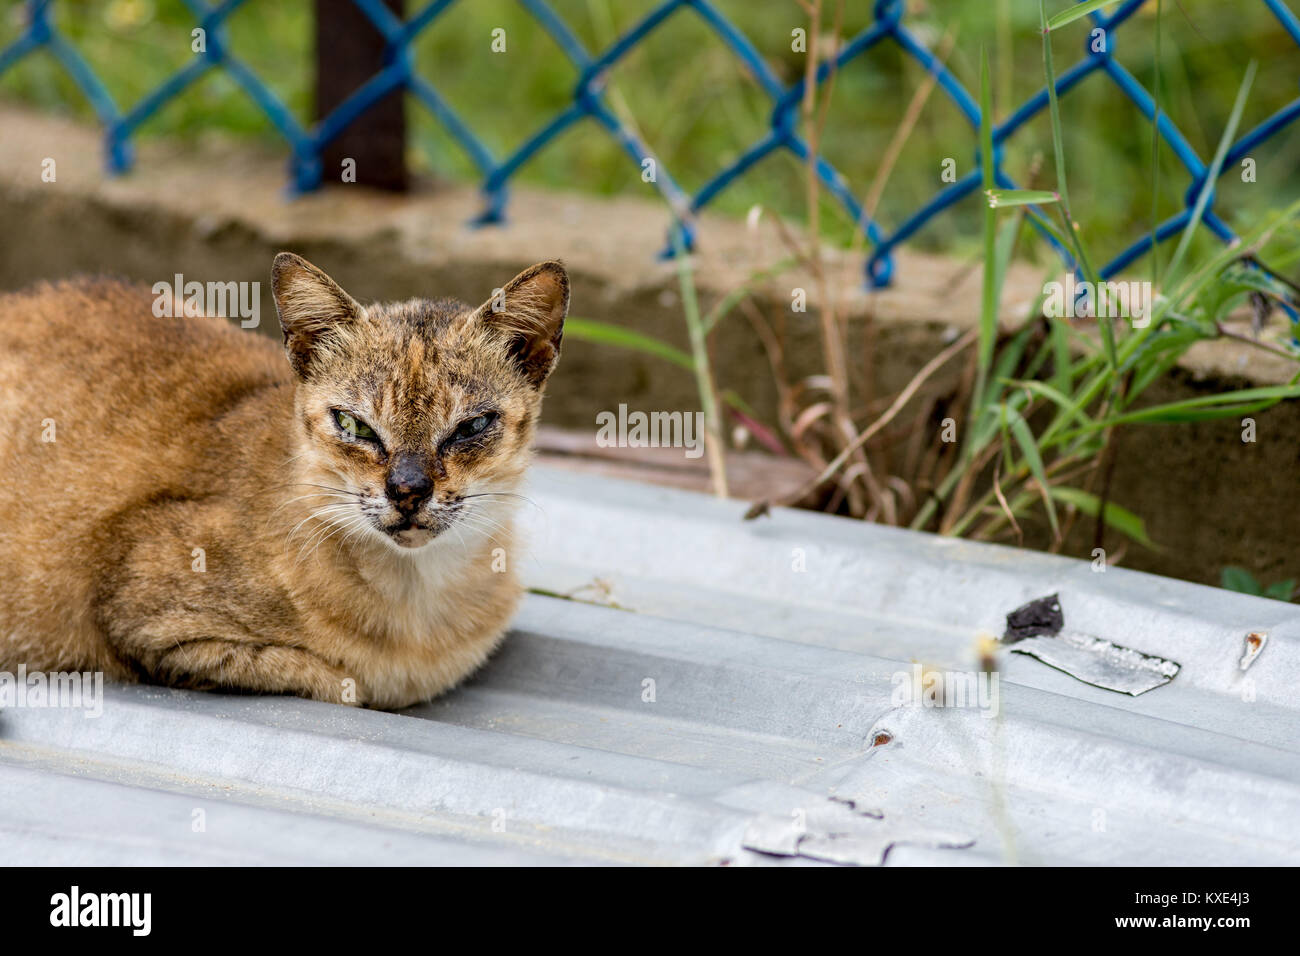 A tough looking street cat with face scars from fighting sat on a corrugated sheet with a fence background with Stock Photo